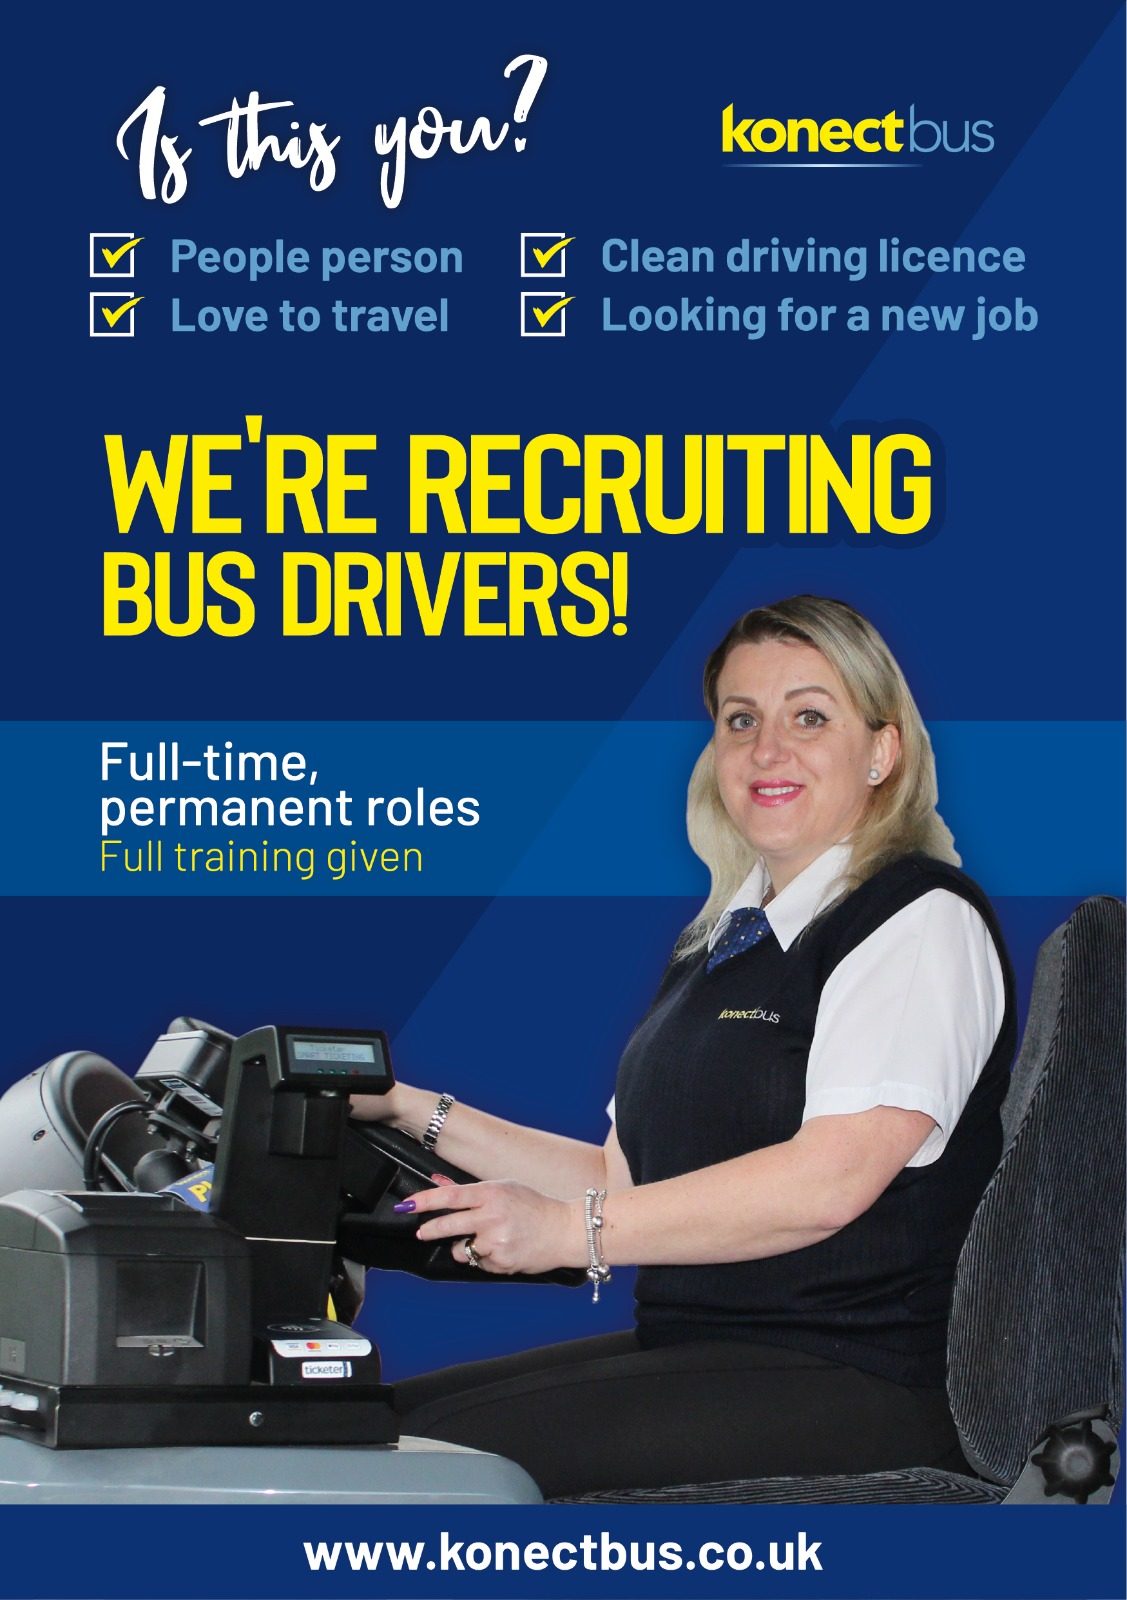 Image of a bus driver